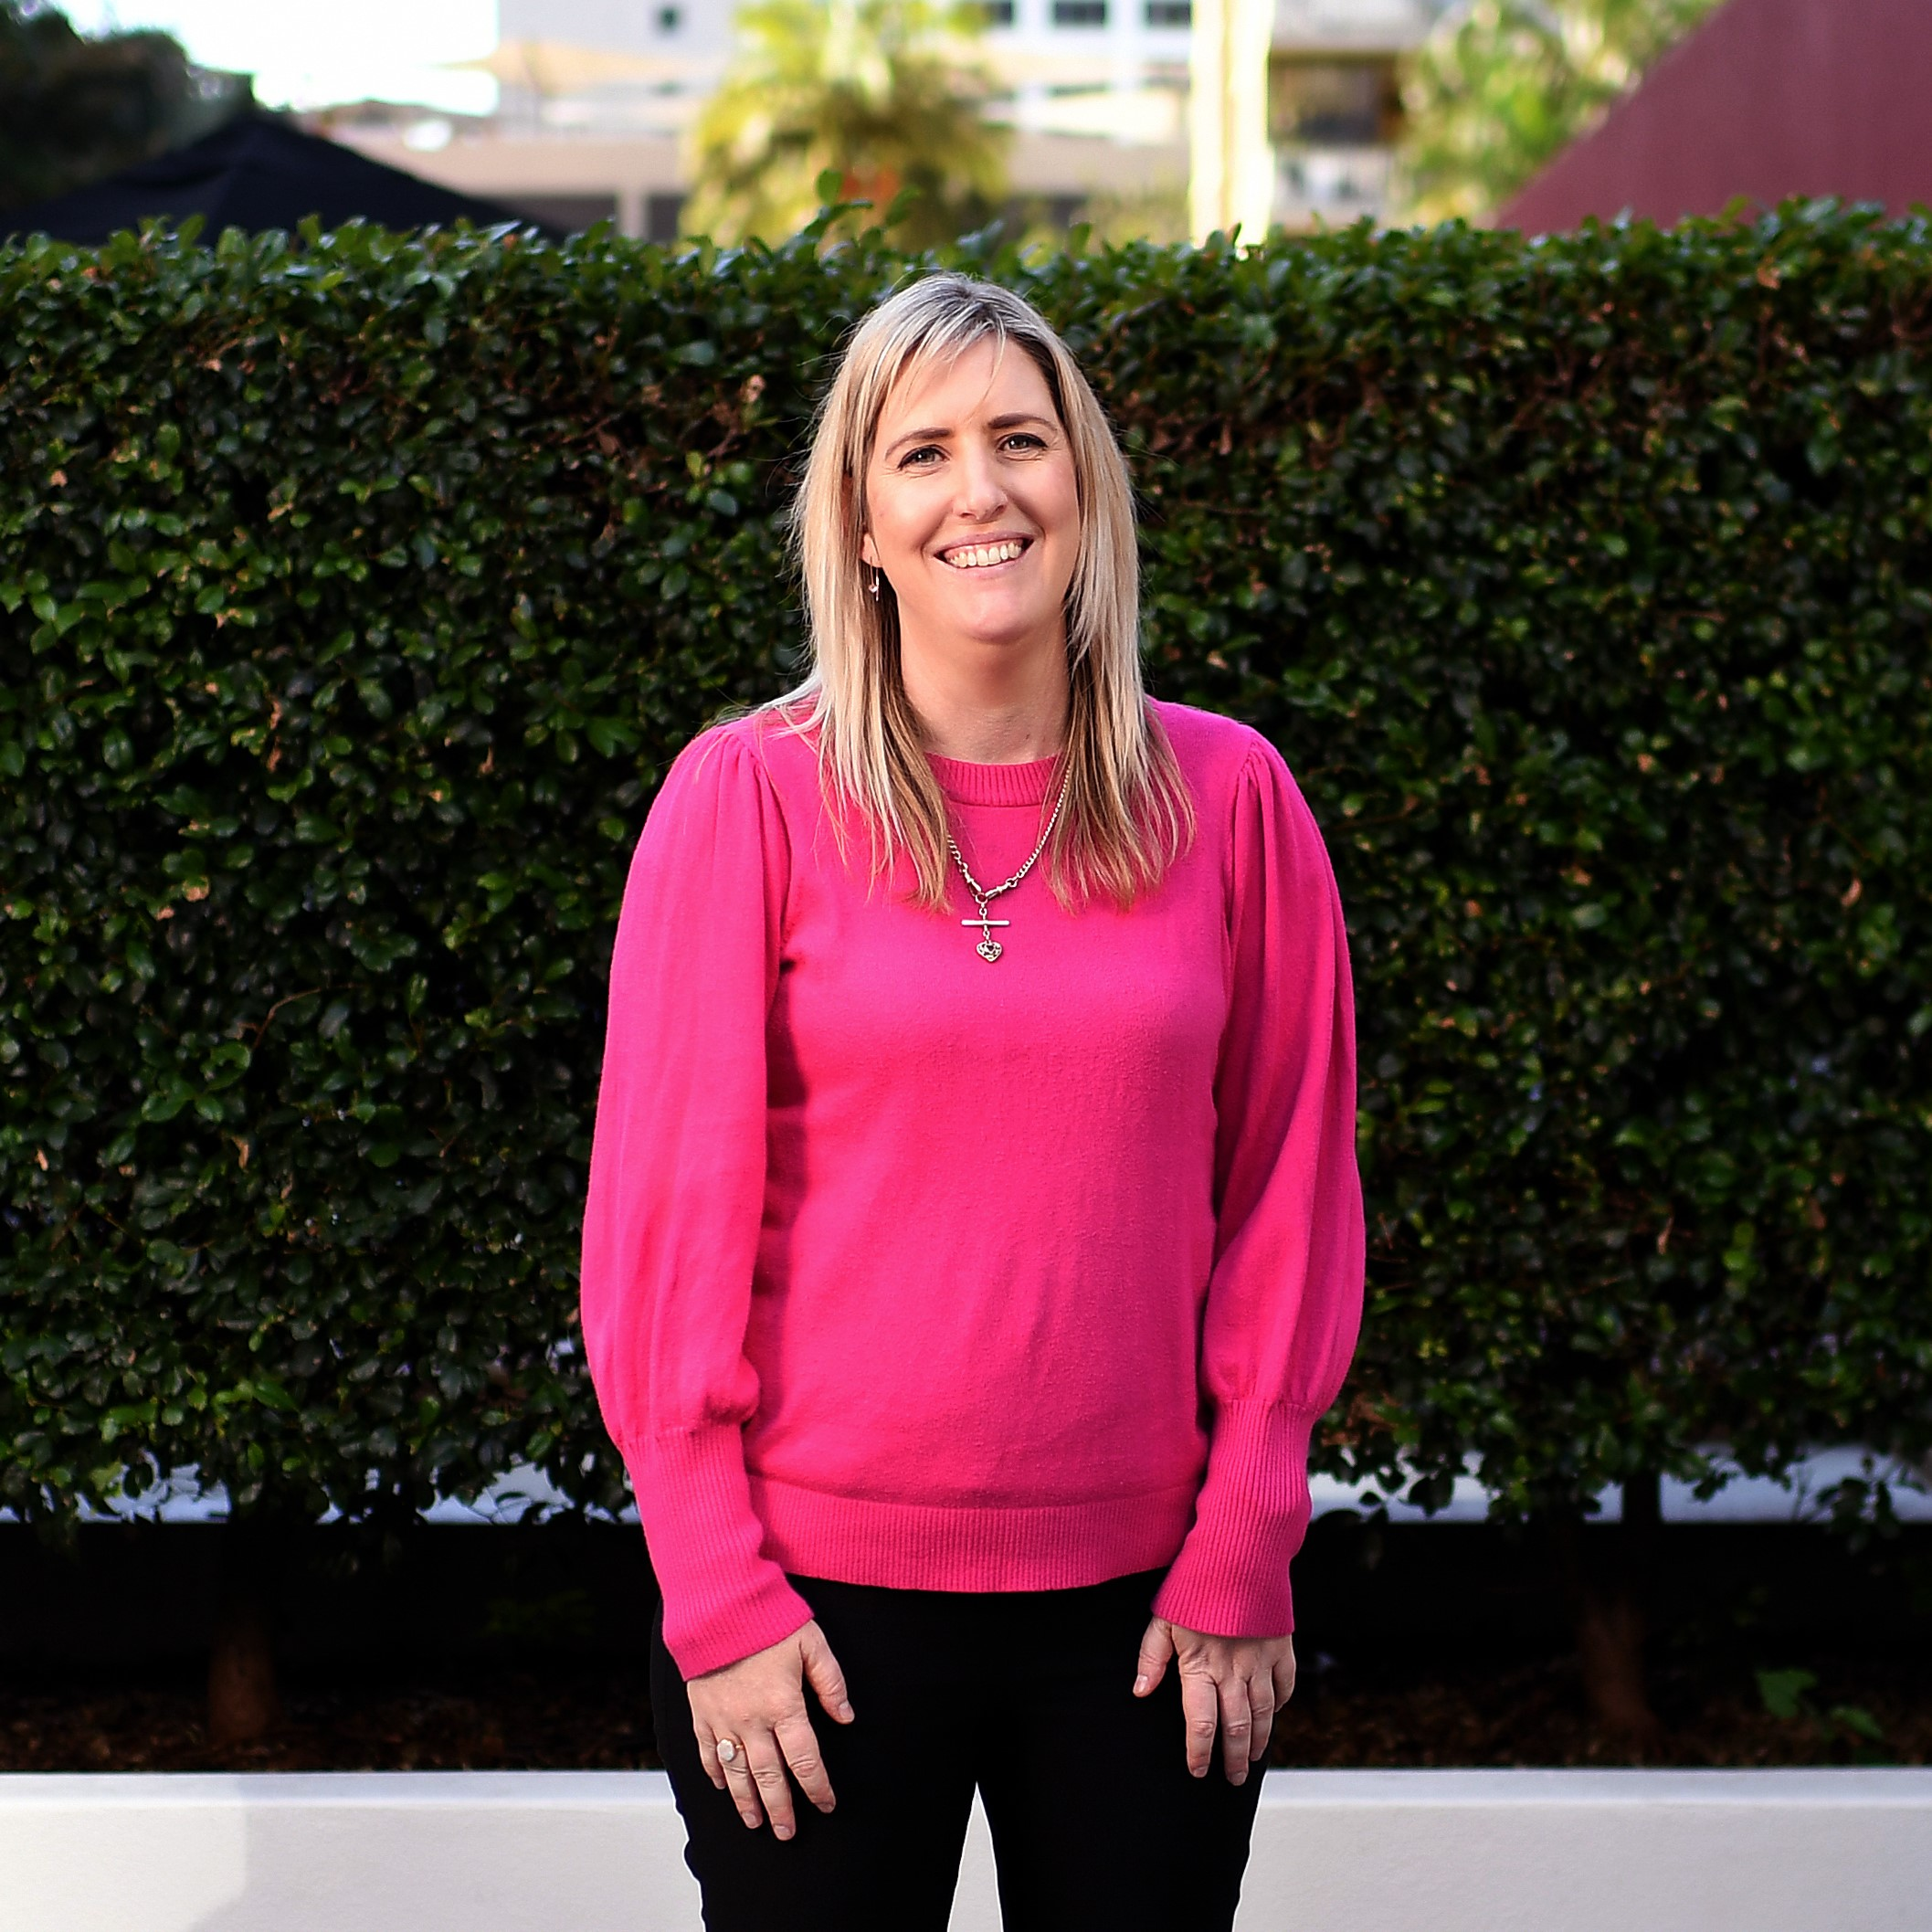 A woman with long blonde hair wearing a bright pink long sleeved top and black pants, smiling at the camera.